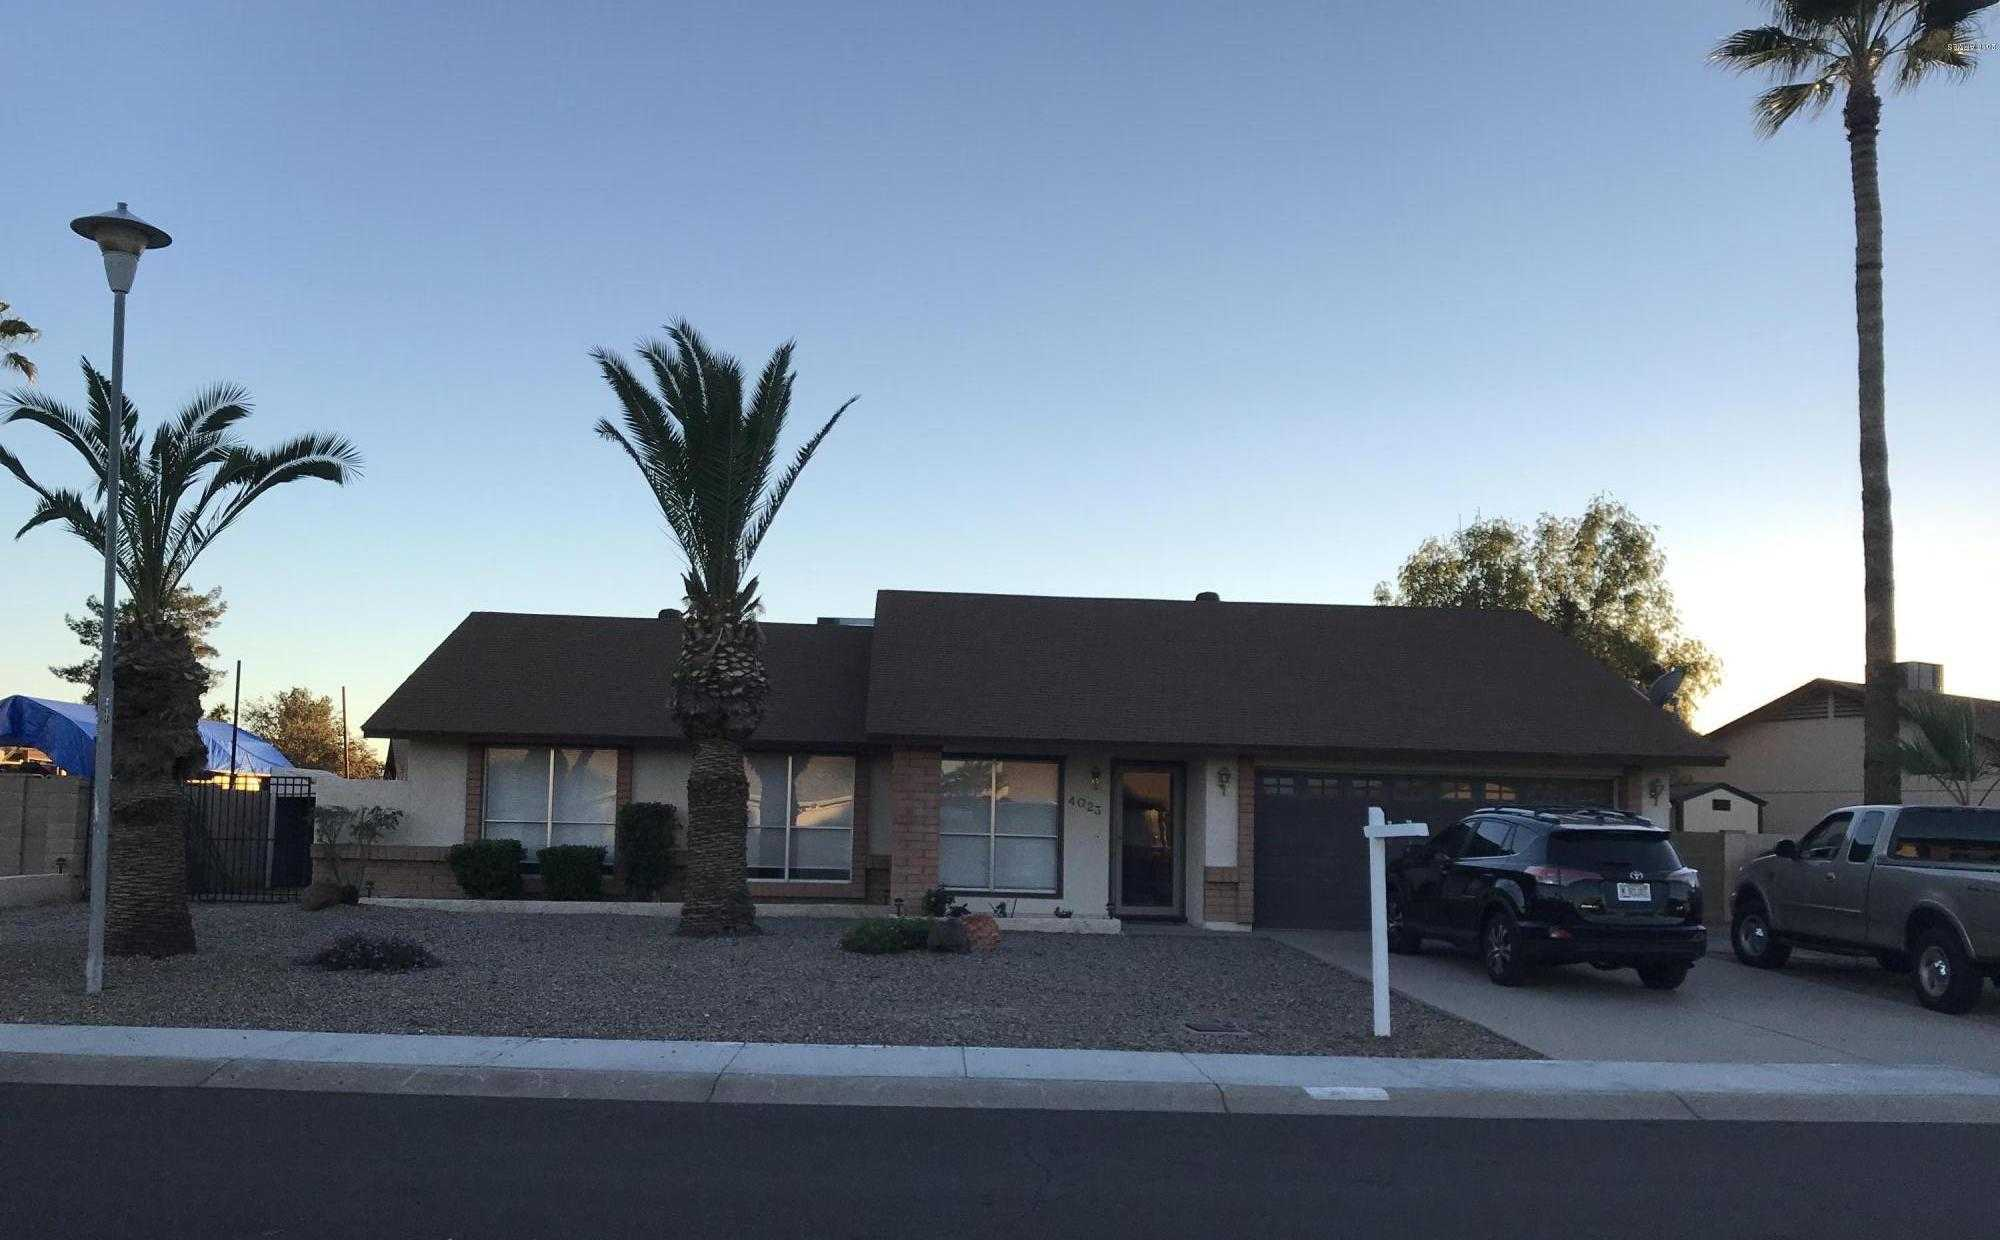 $227,000 - 3Br/2Ba - Home for Sale in Willow Creek 2, Glendale